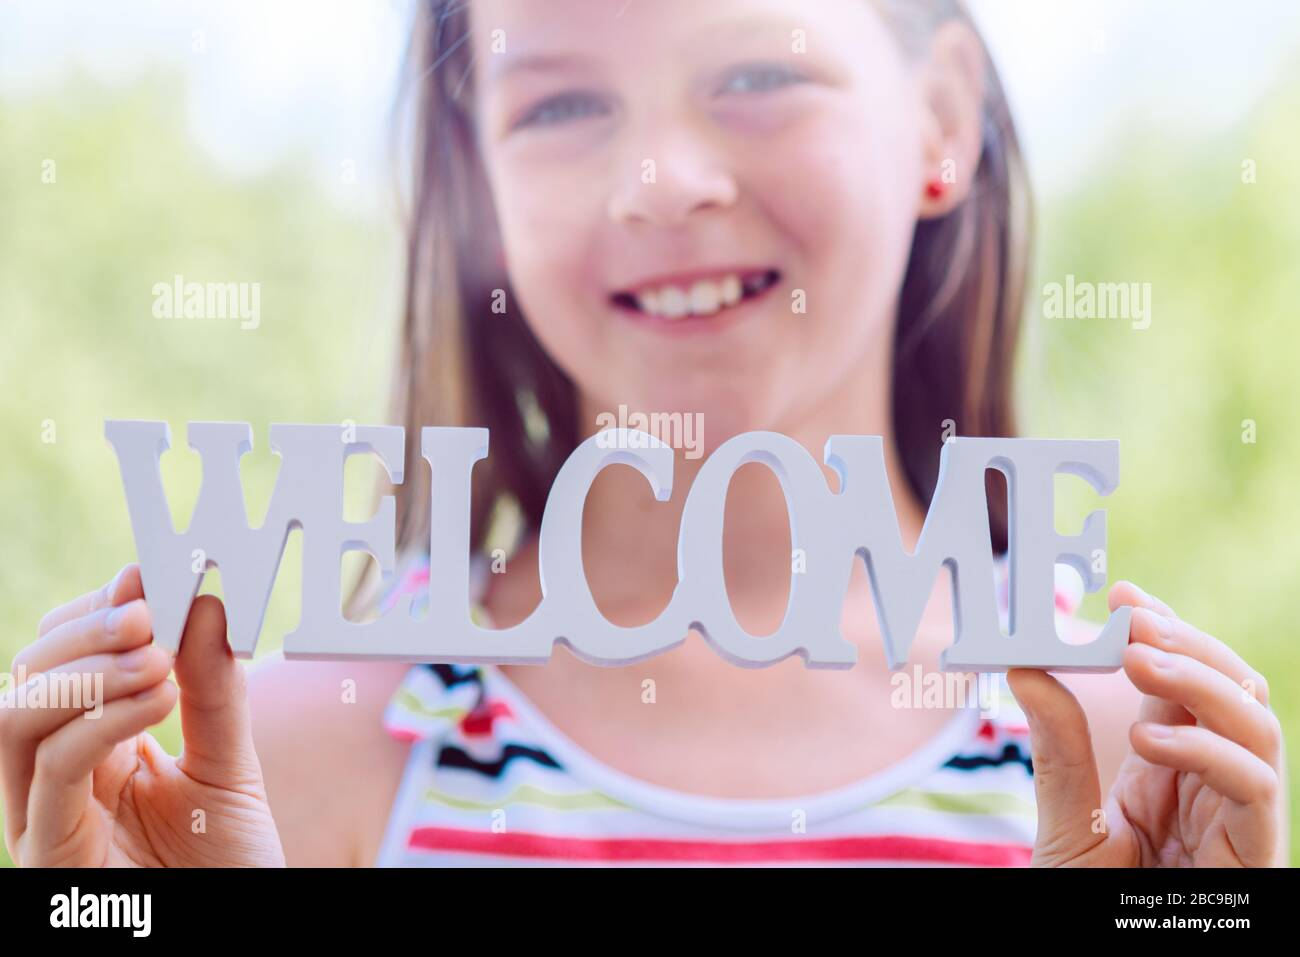 Little laughing girl holding the words WELCOME in her hands - shallow depth of field - focus on lettering Stock Photo